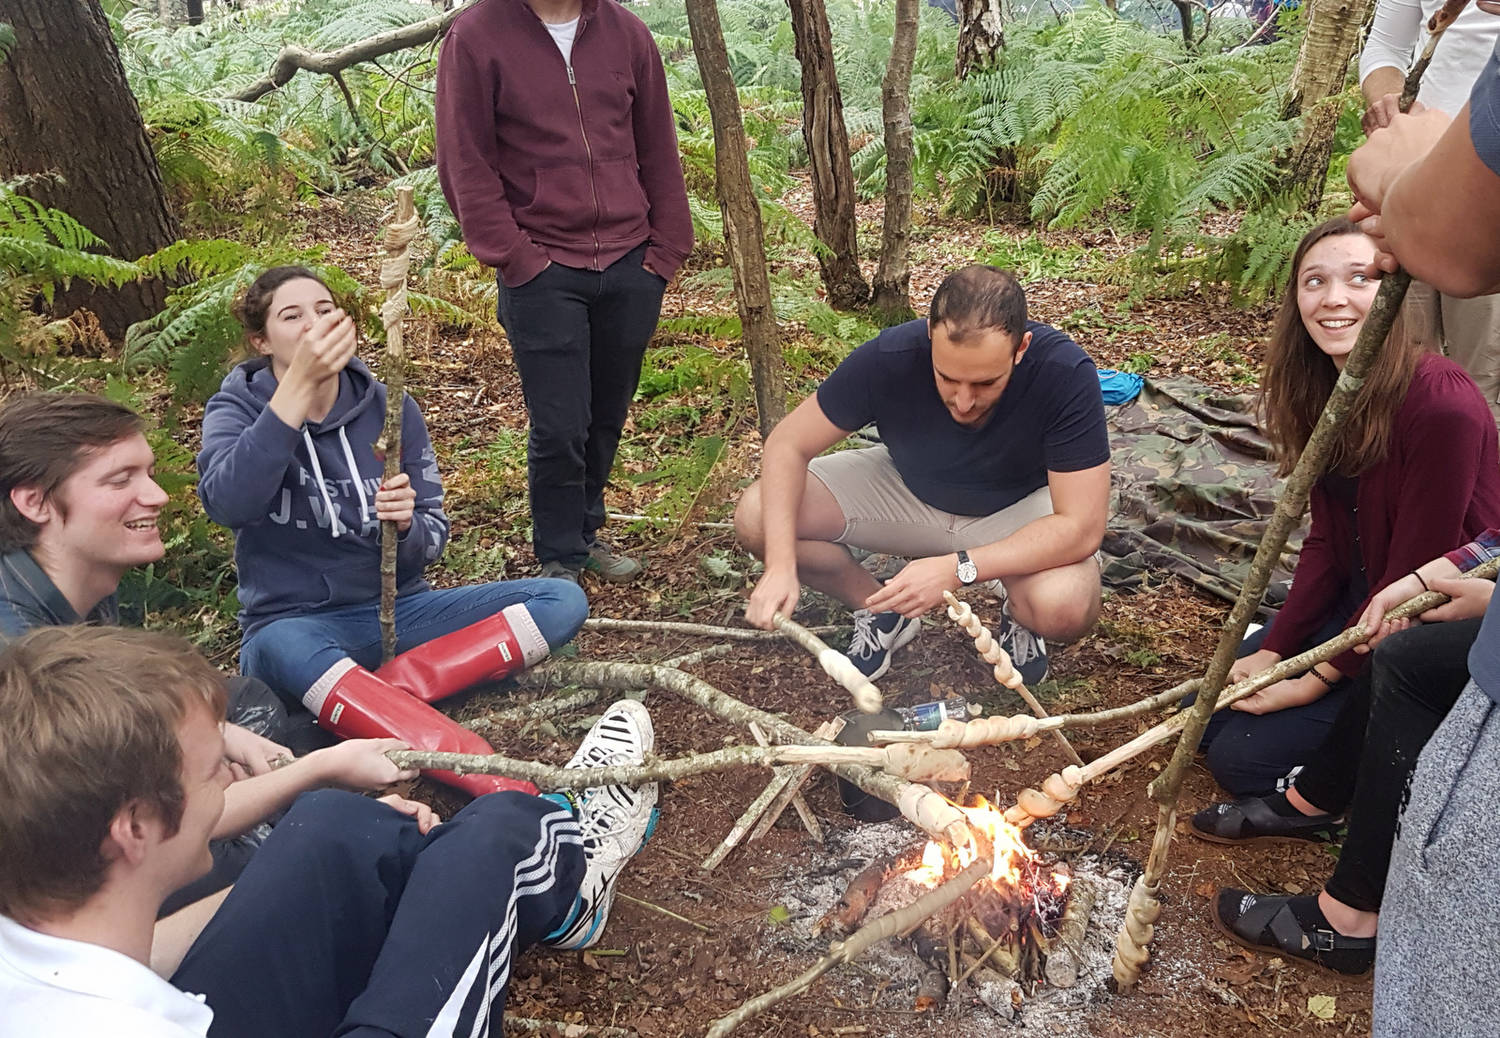 A group of people cooking over a campfire in the woods